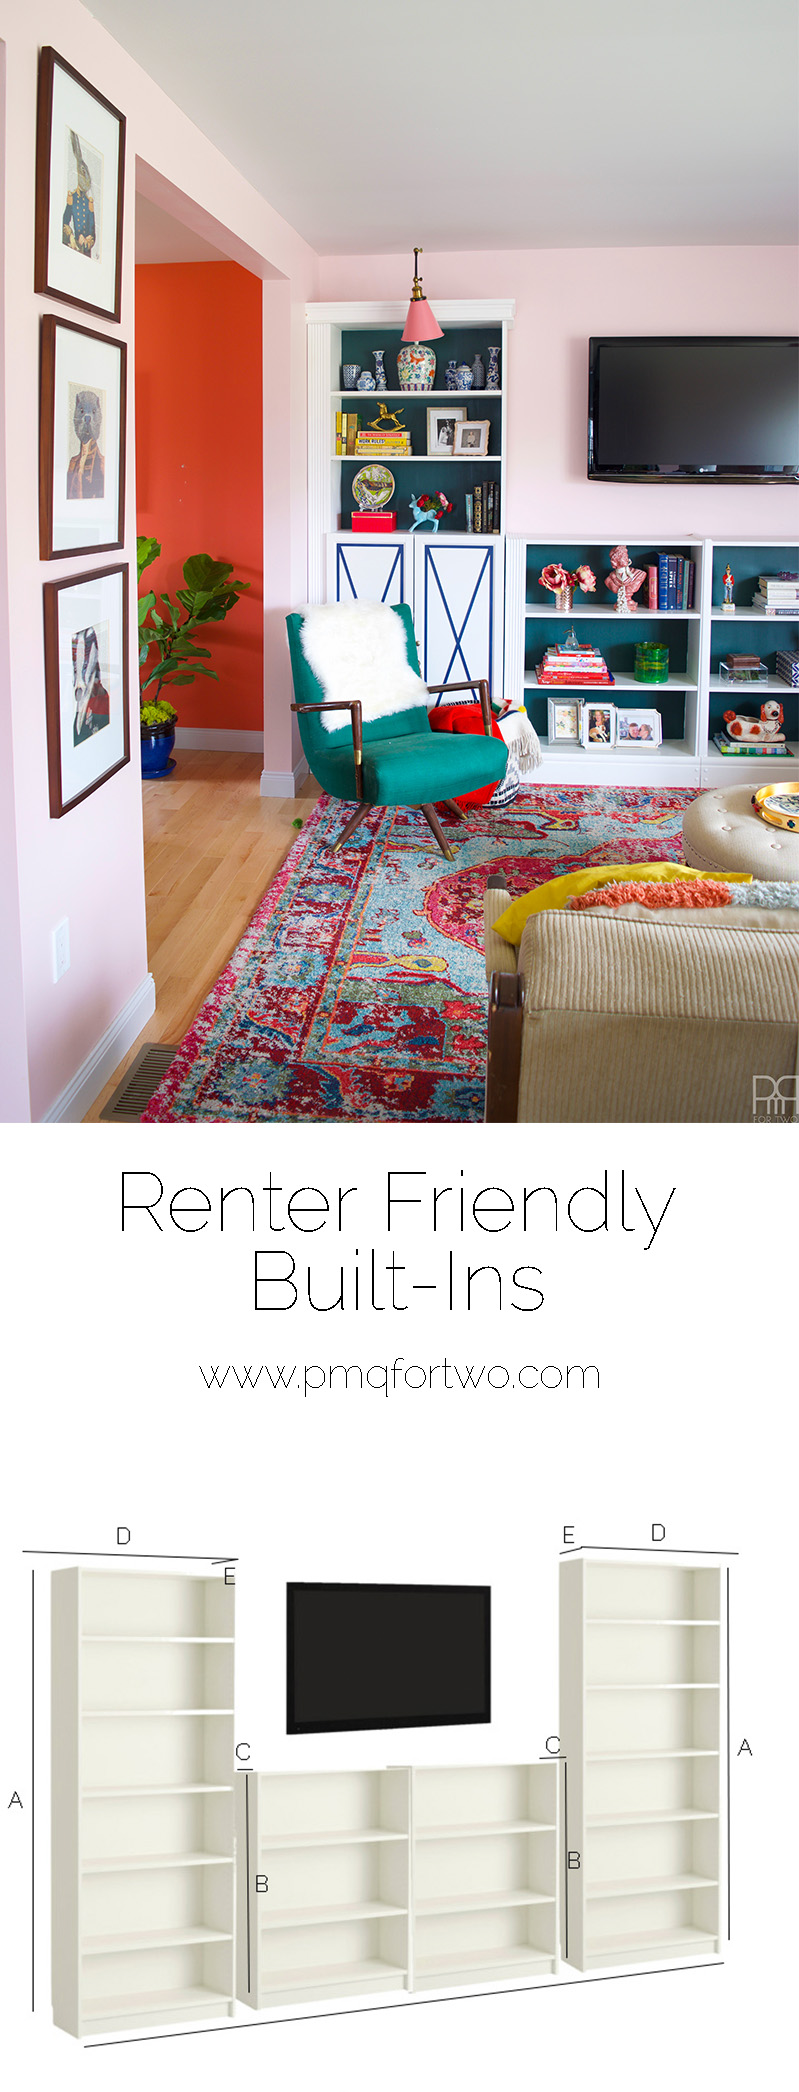 renter-friendly-built-ins